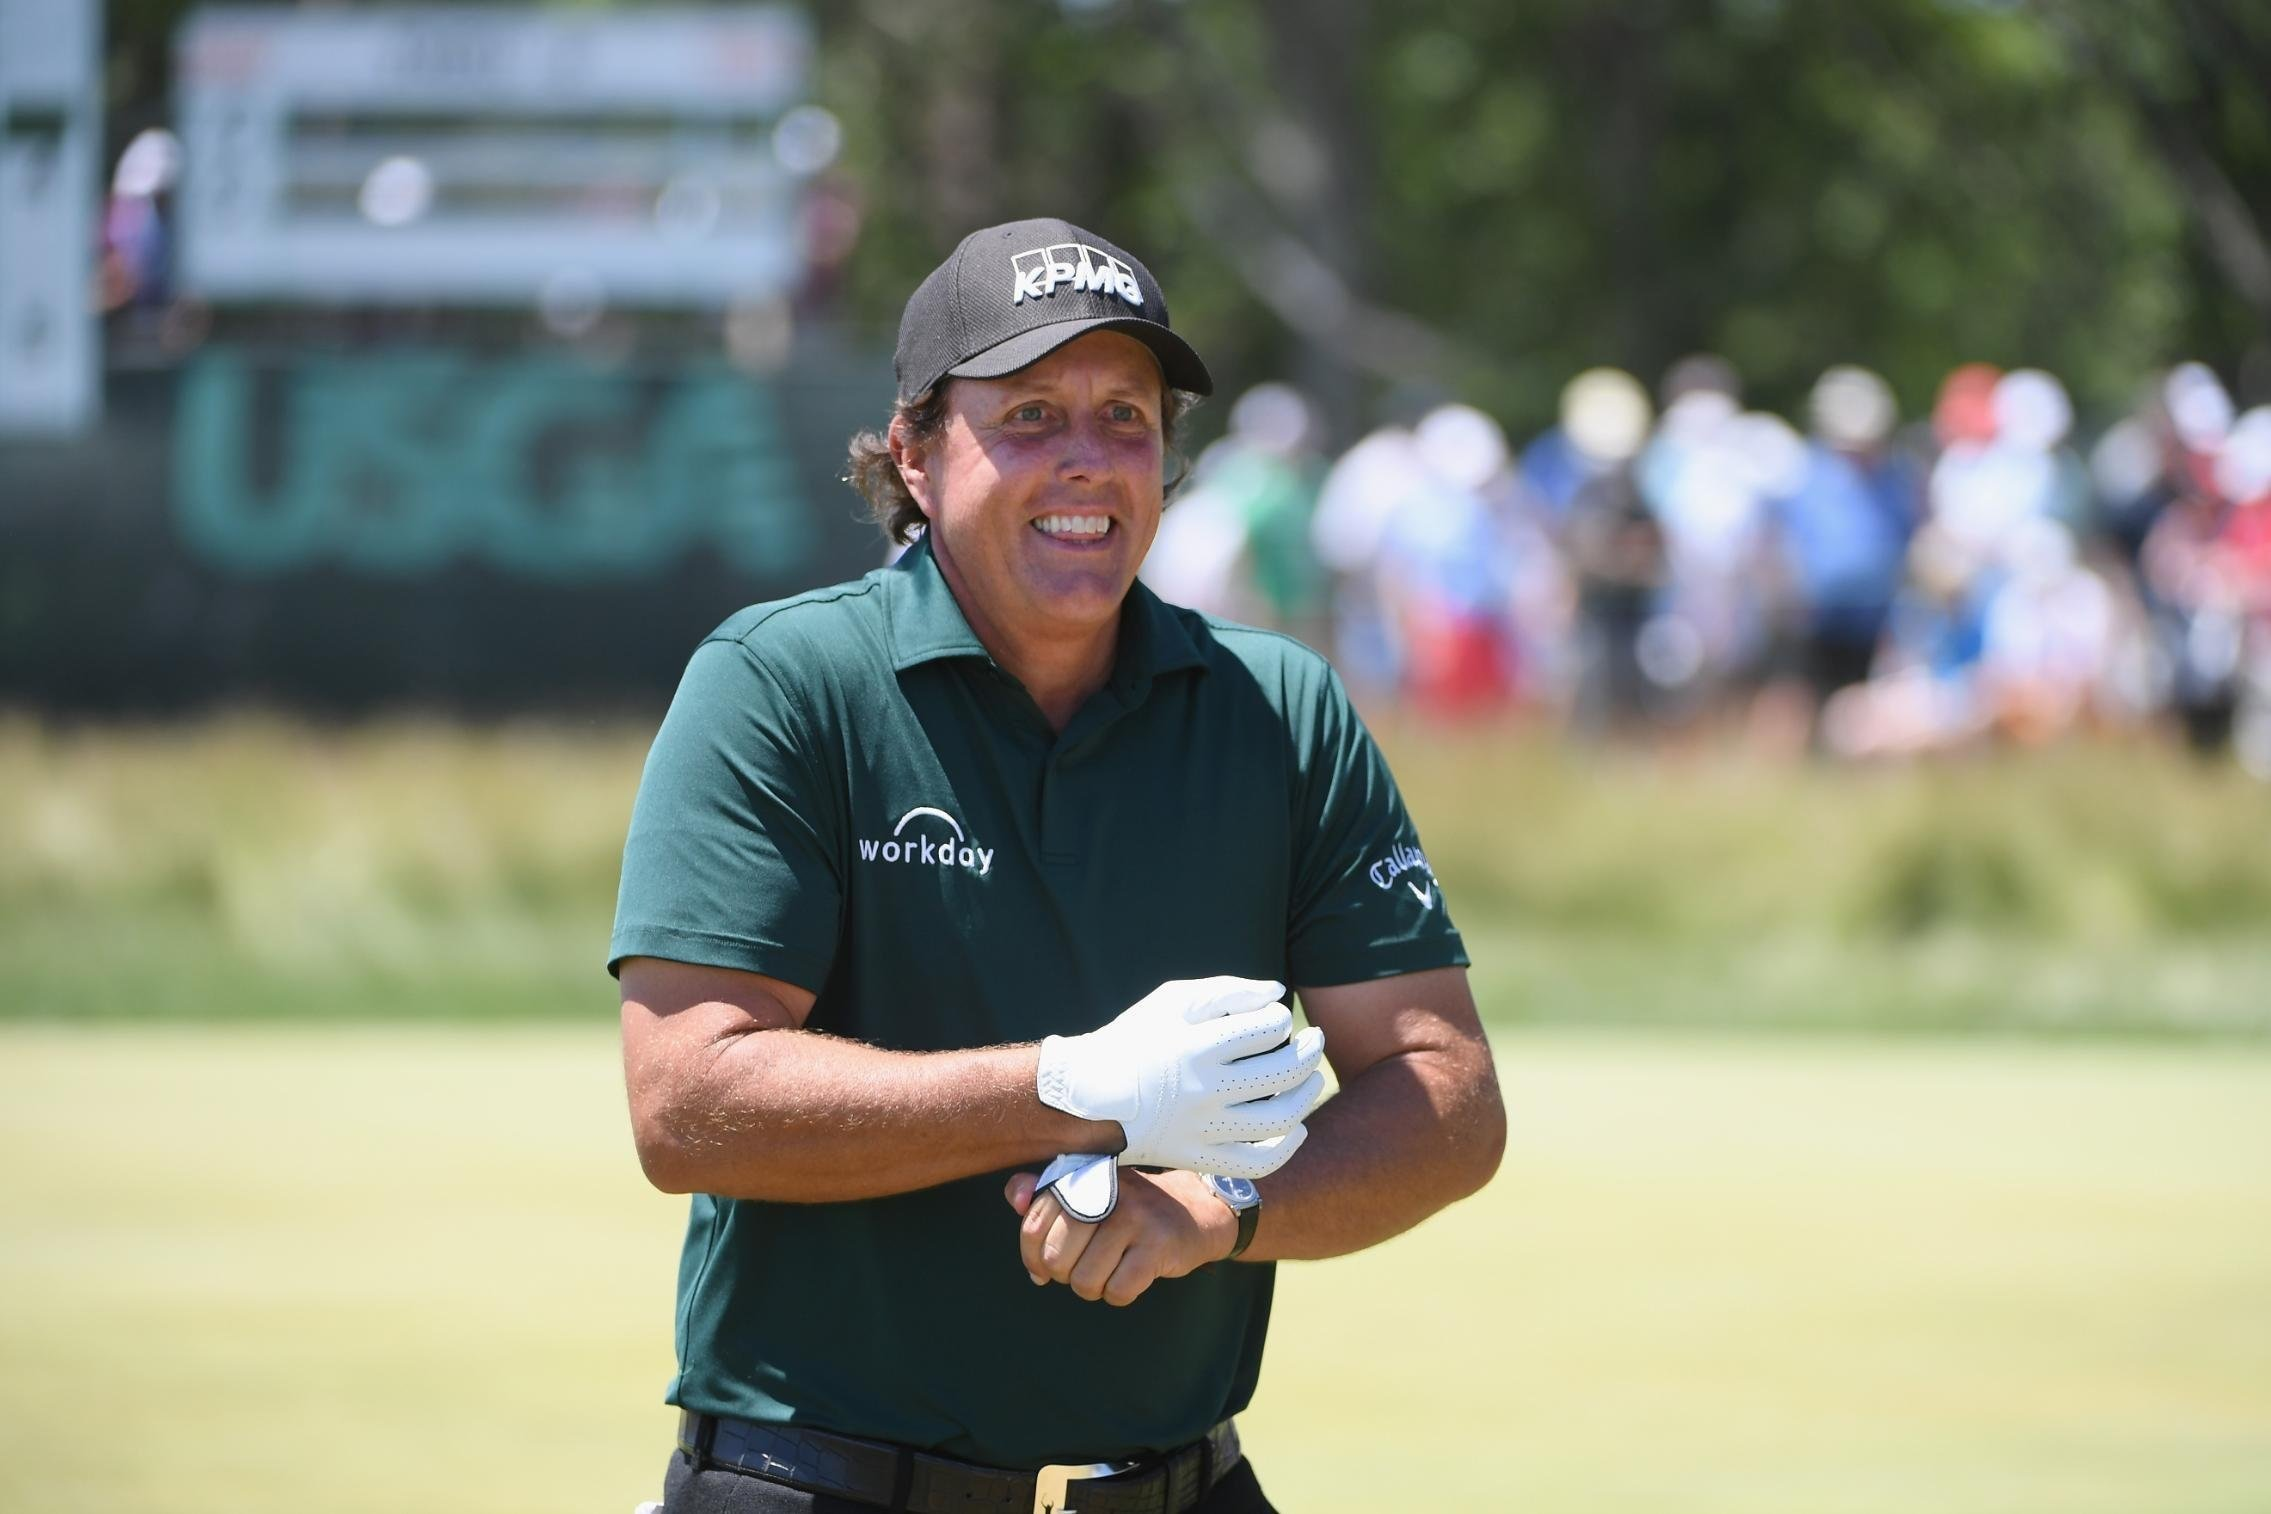 Phil Mickelson Hits Moving Ball Out of Frustration at U.S. Open